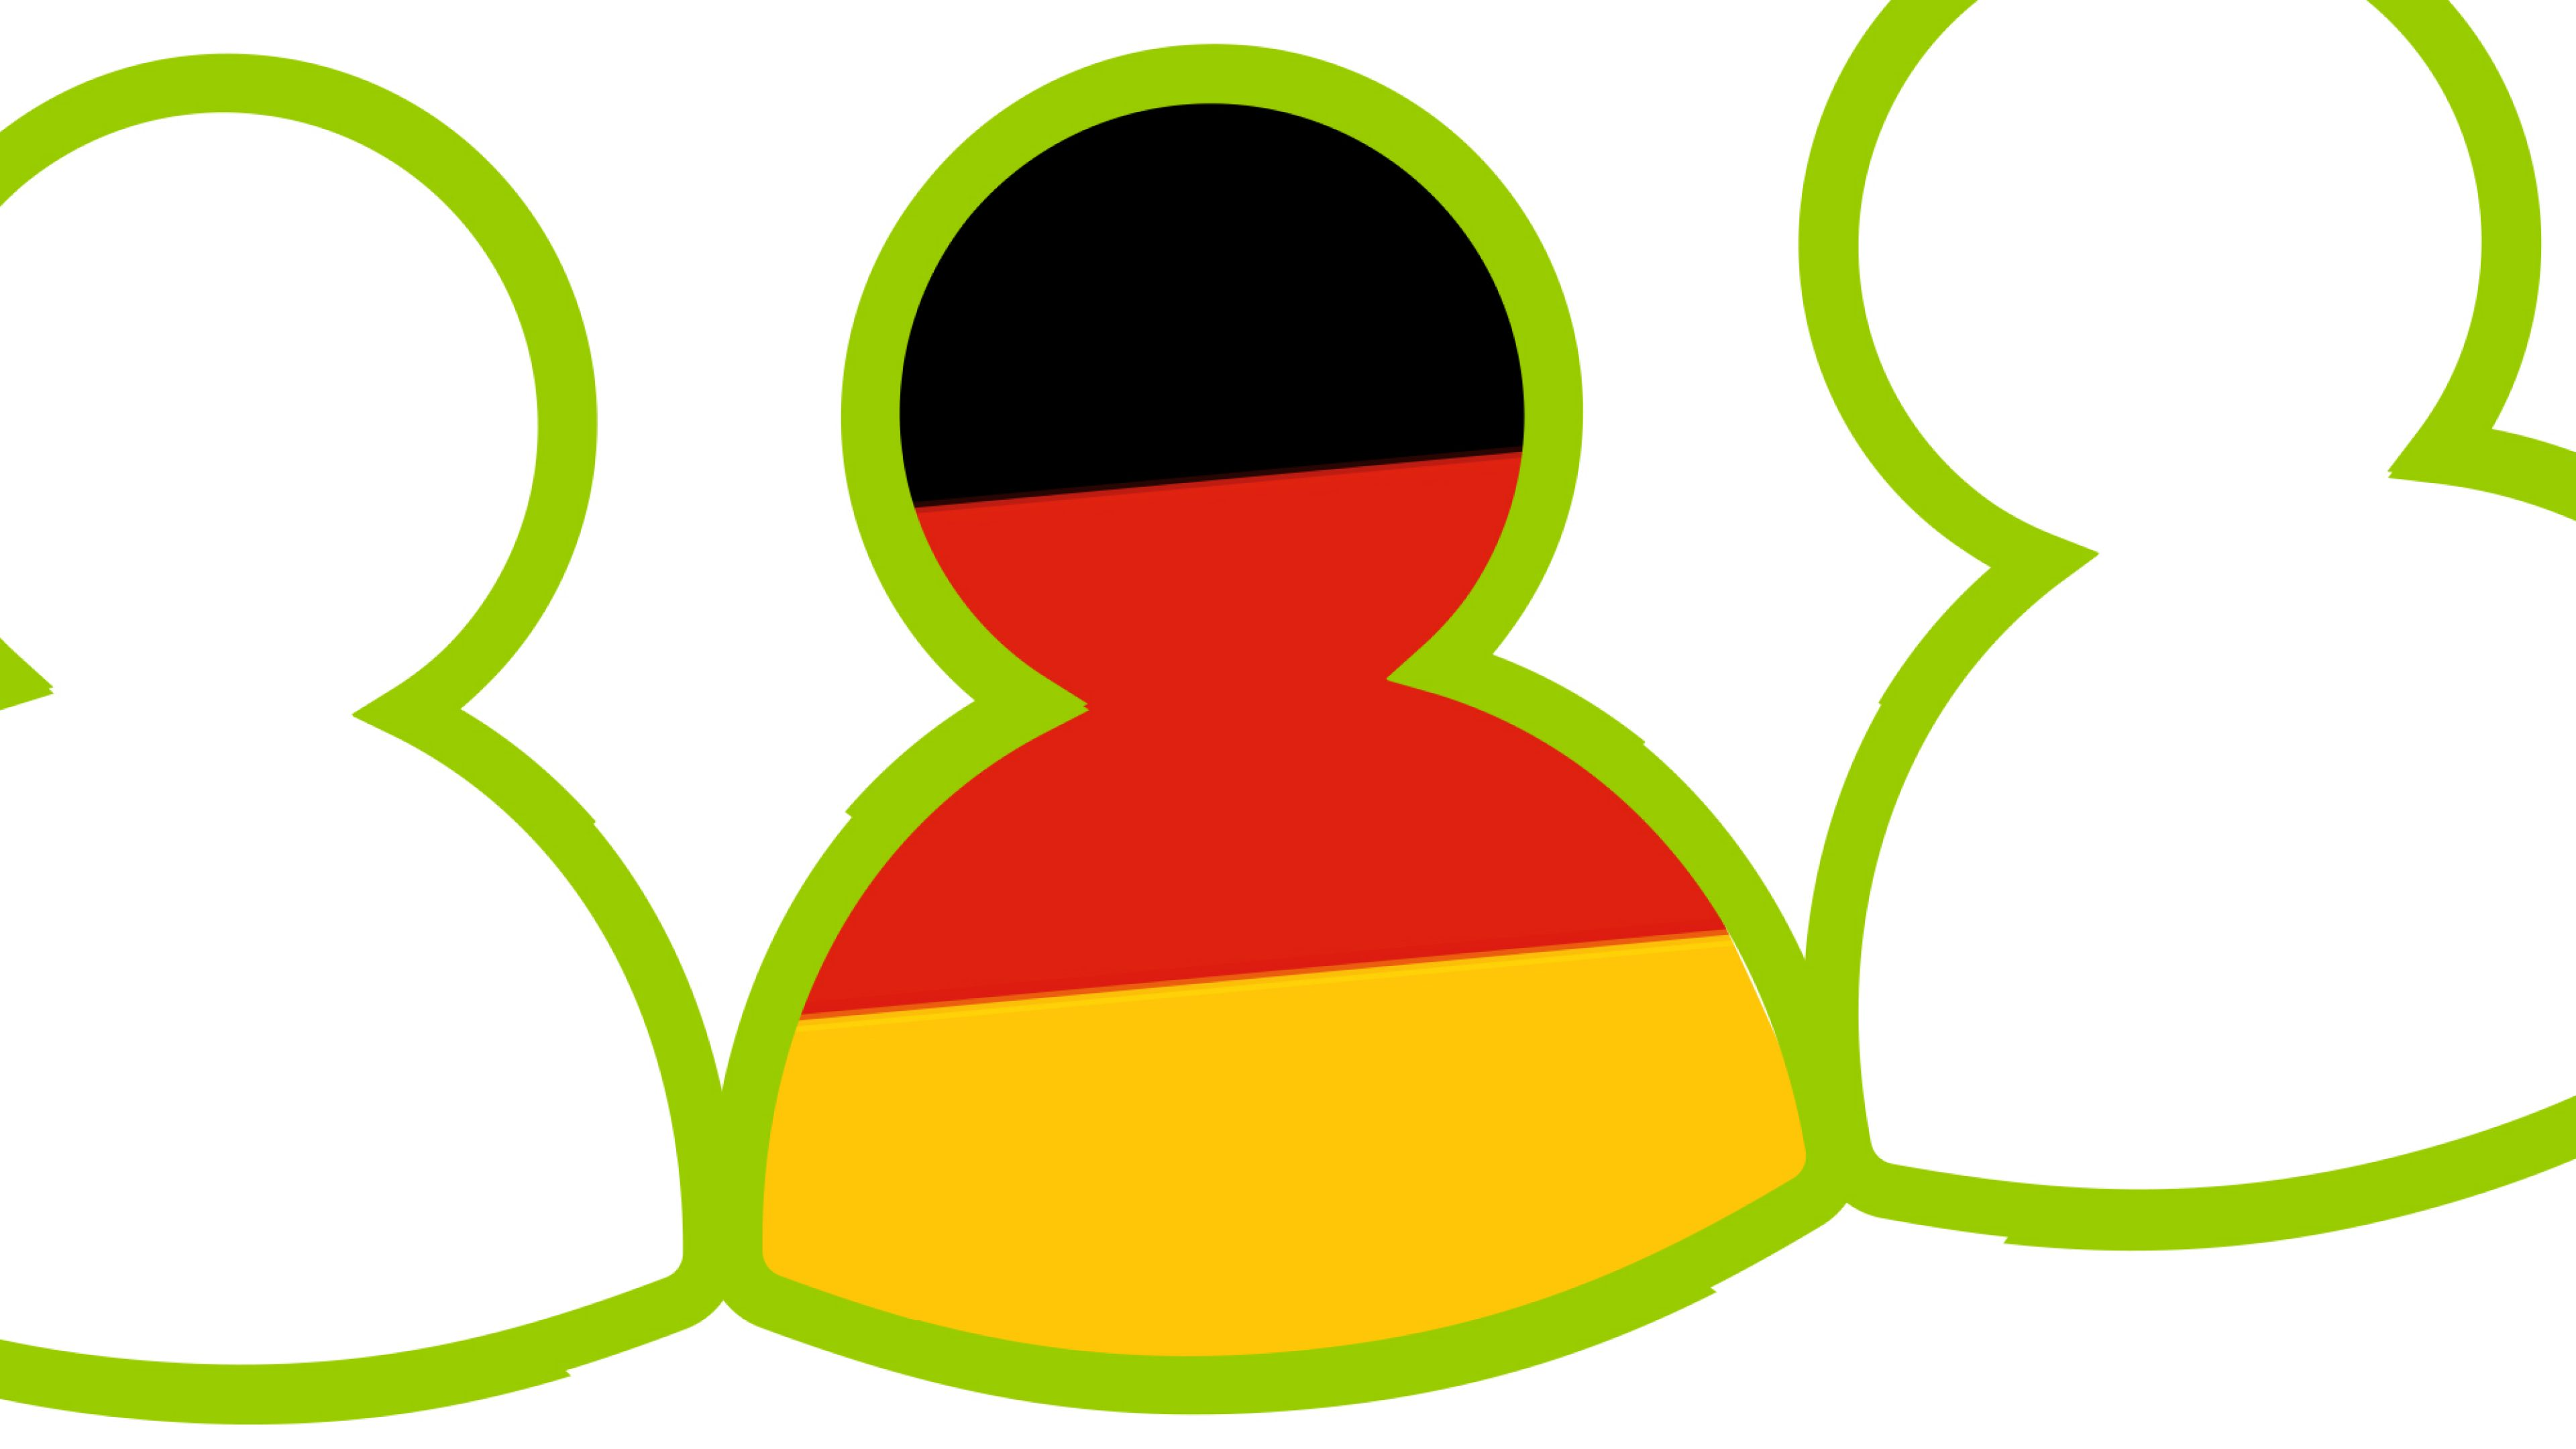 Person icon with the German flag inside - myinvoice Deutsch